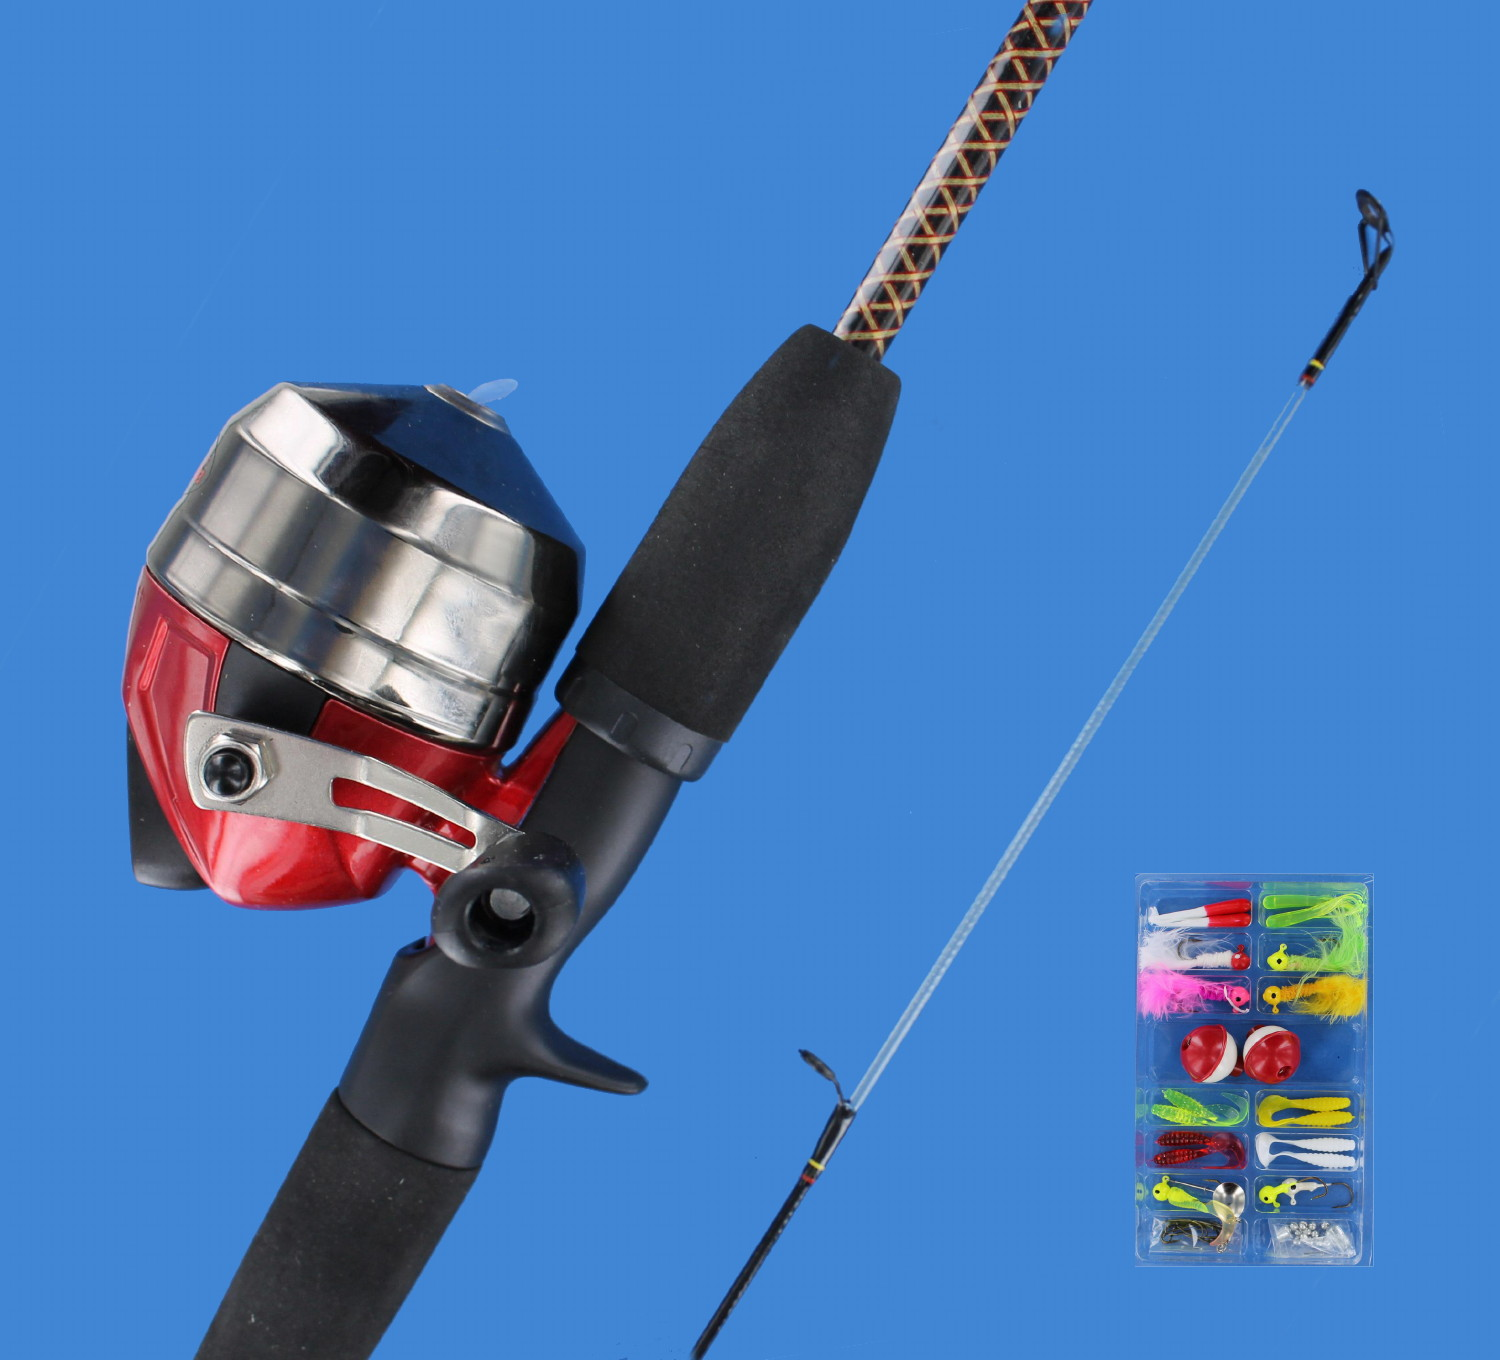 Shakespeare ugly stik 5 39 fishing rod spincast reel for Ugly stick fishing poles